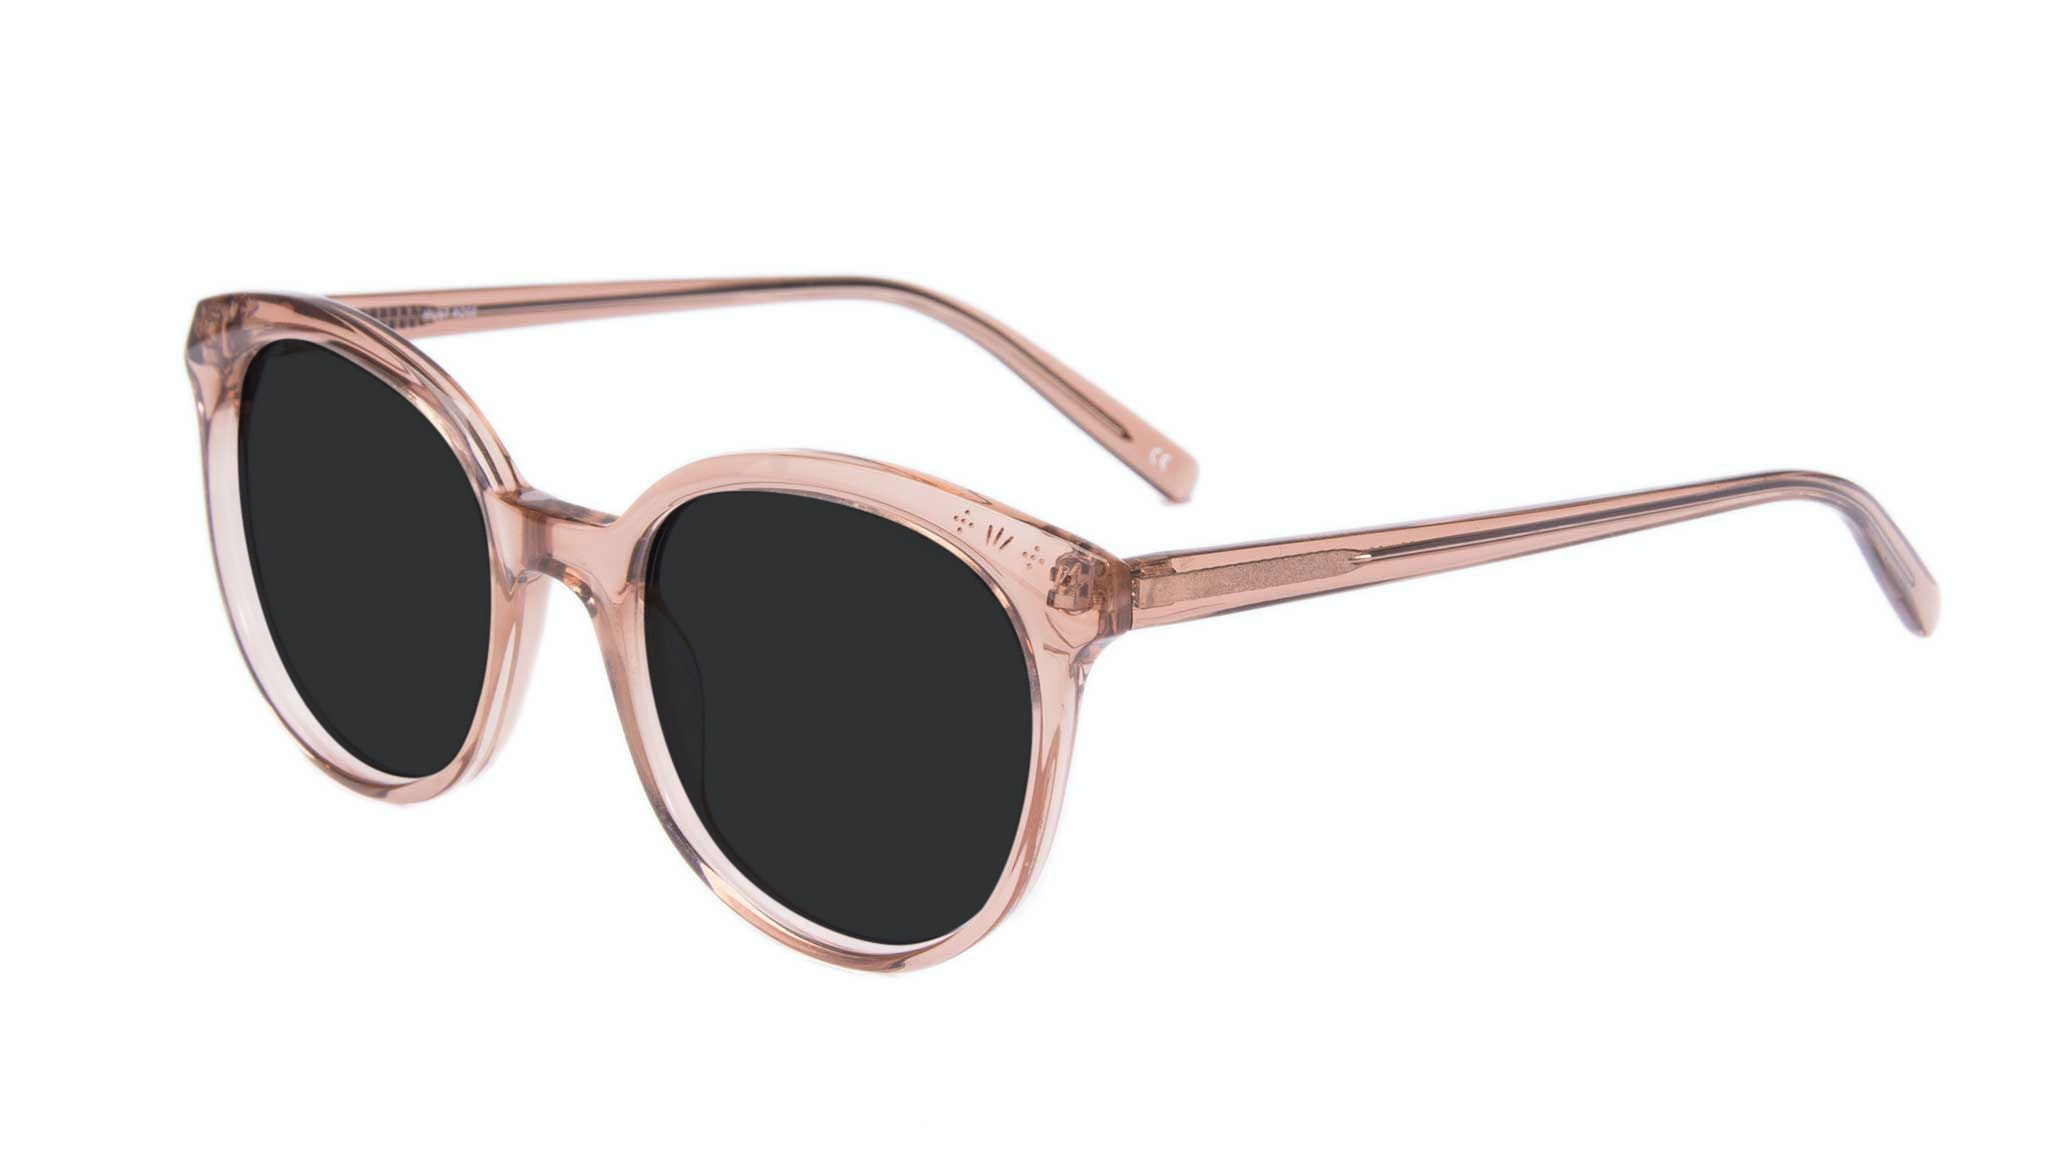 Affordable Fashion Glasses Round Sunglasses Women Must Rose Tilt